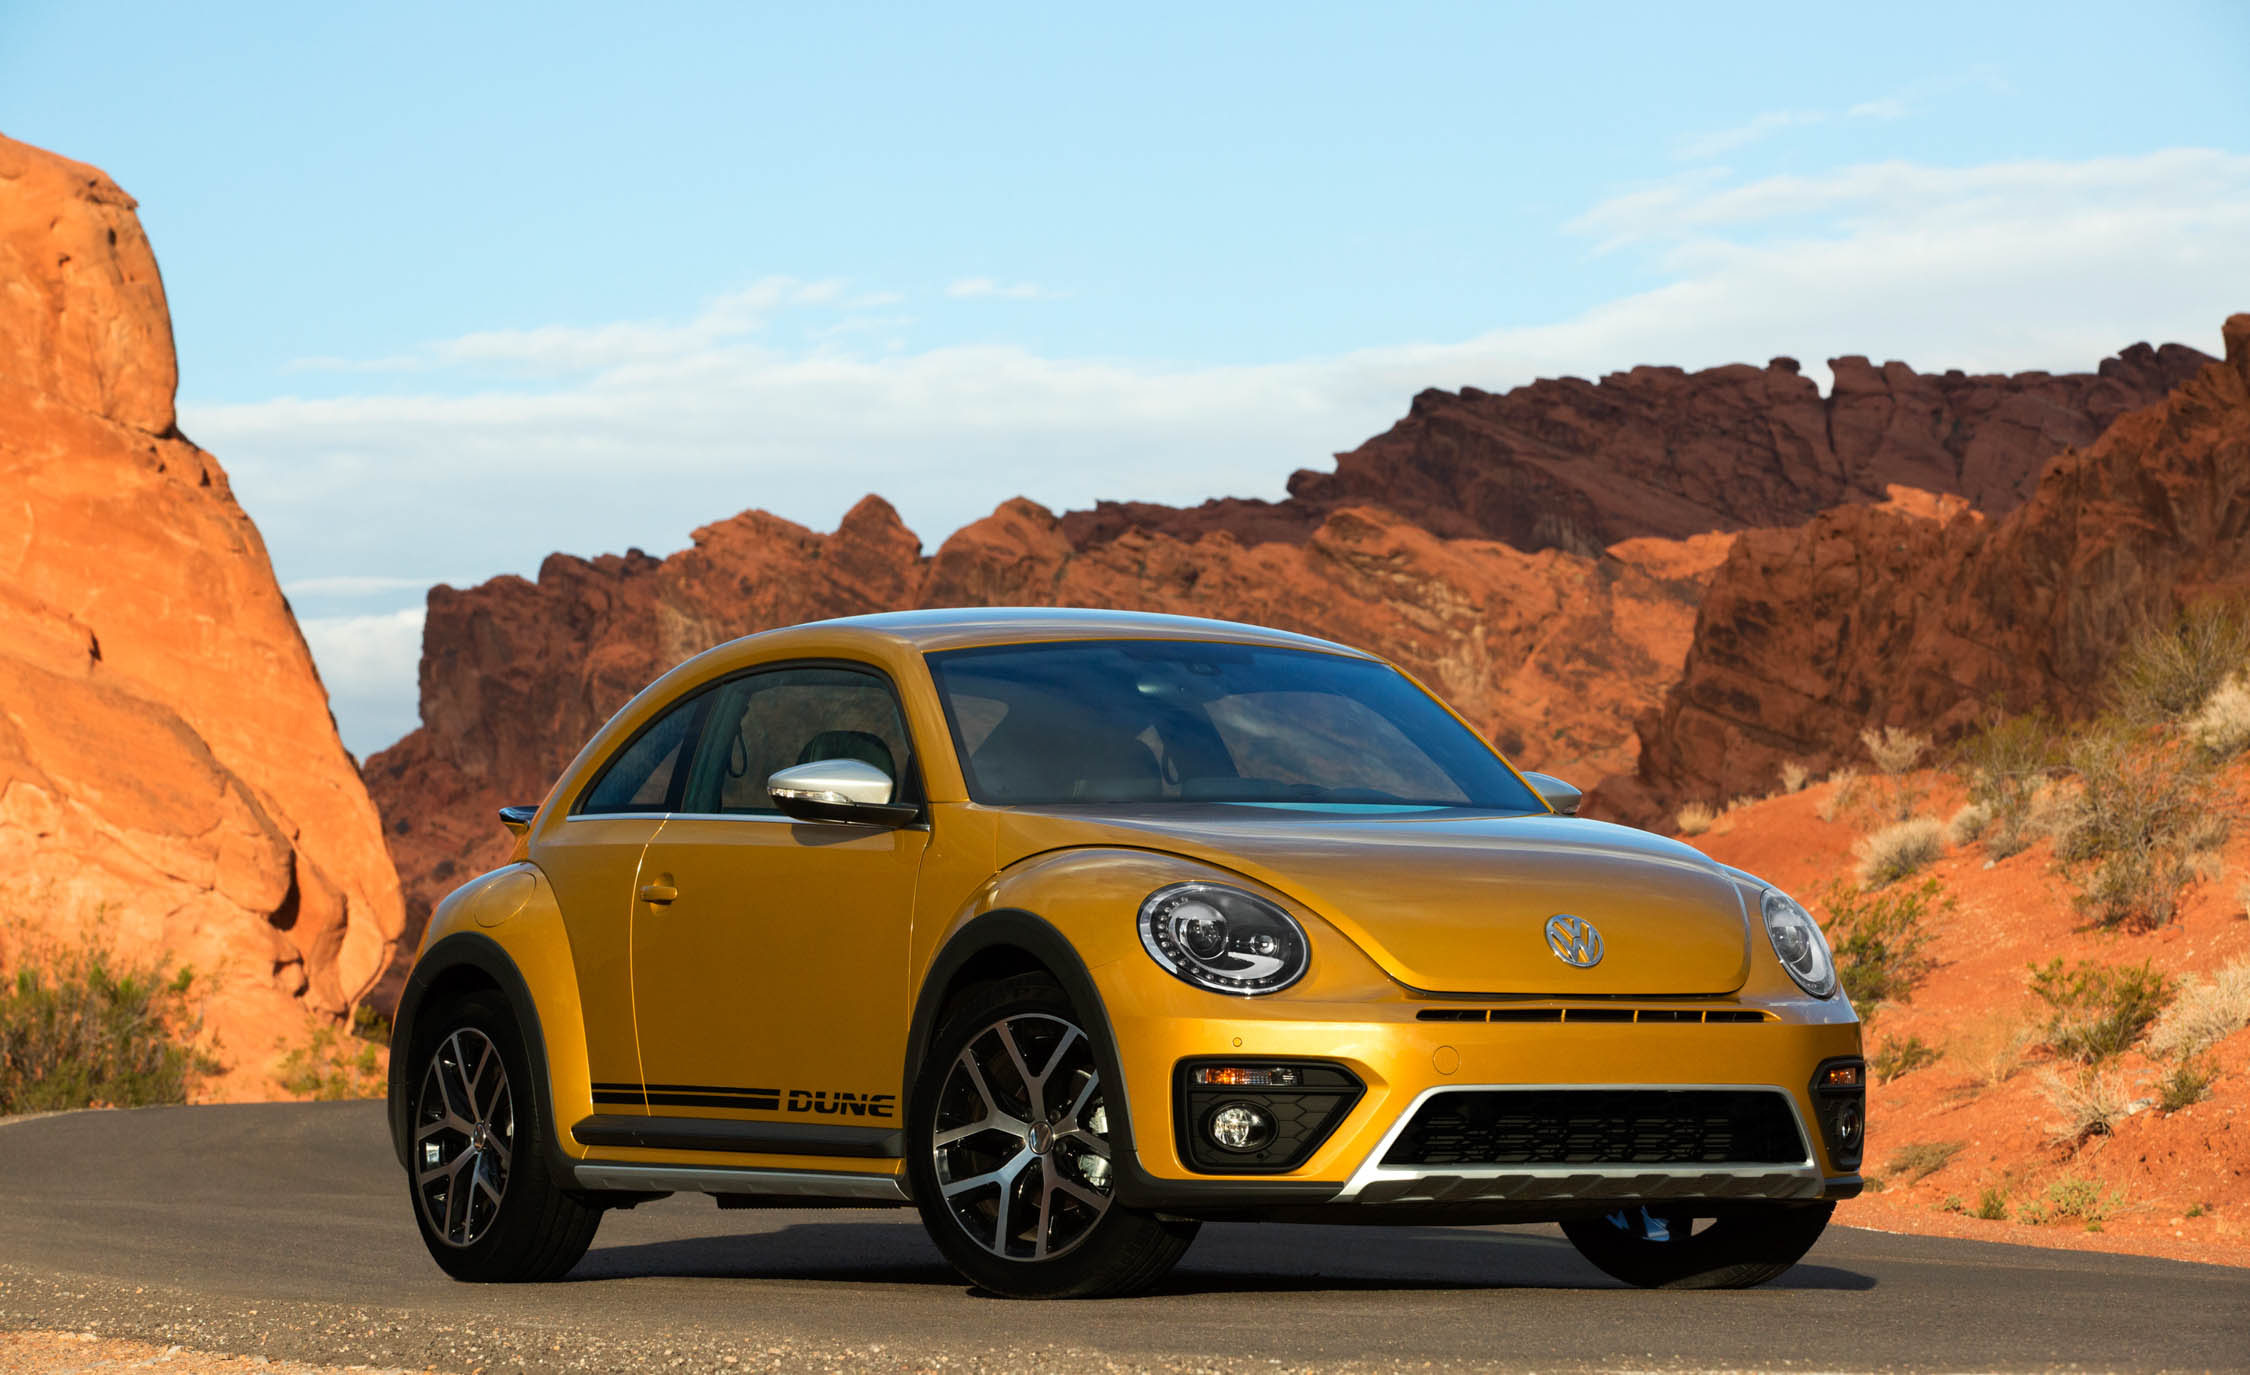 2016 Volkswagen Beetle Dune Coupe Exterior Full Front And Side (Photo 12 of 32)